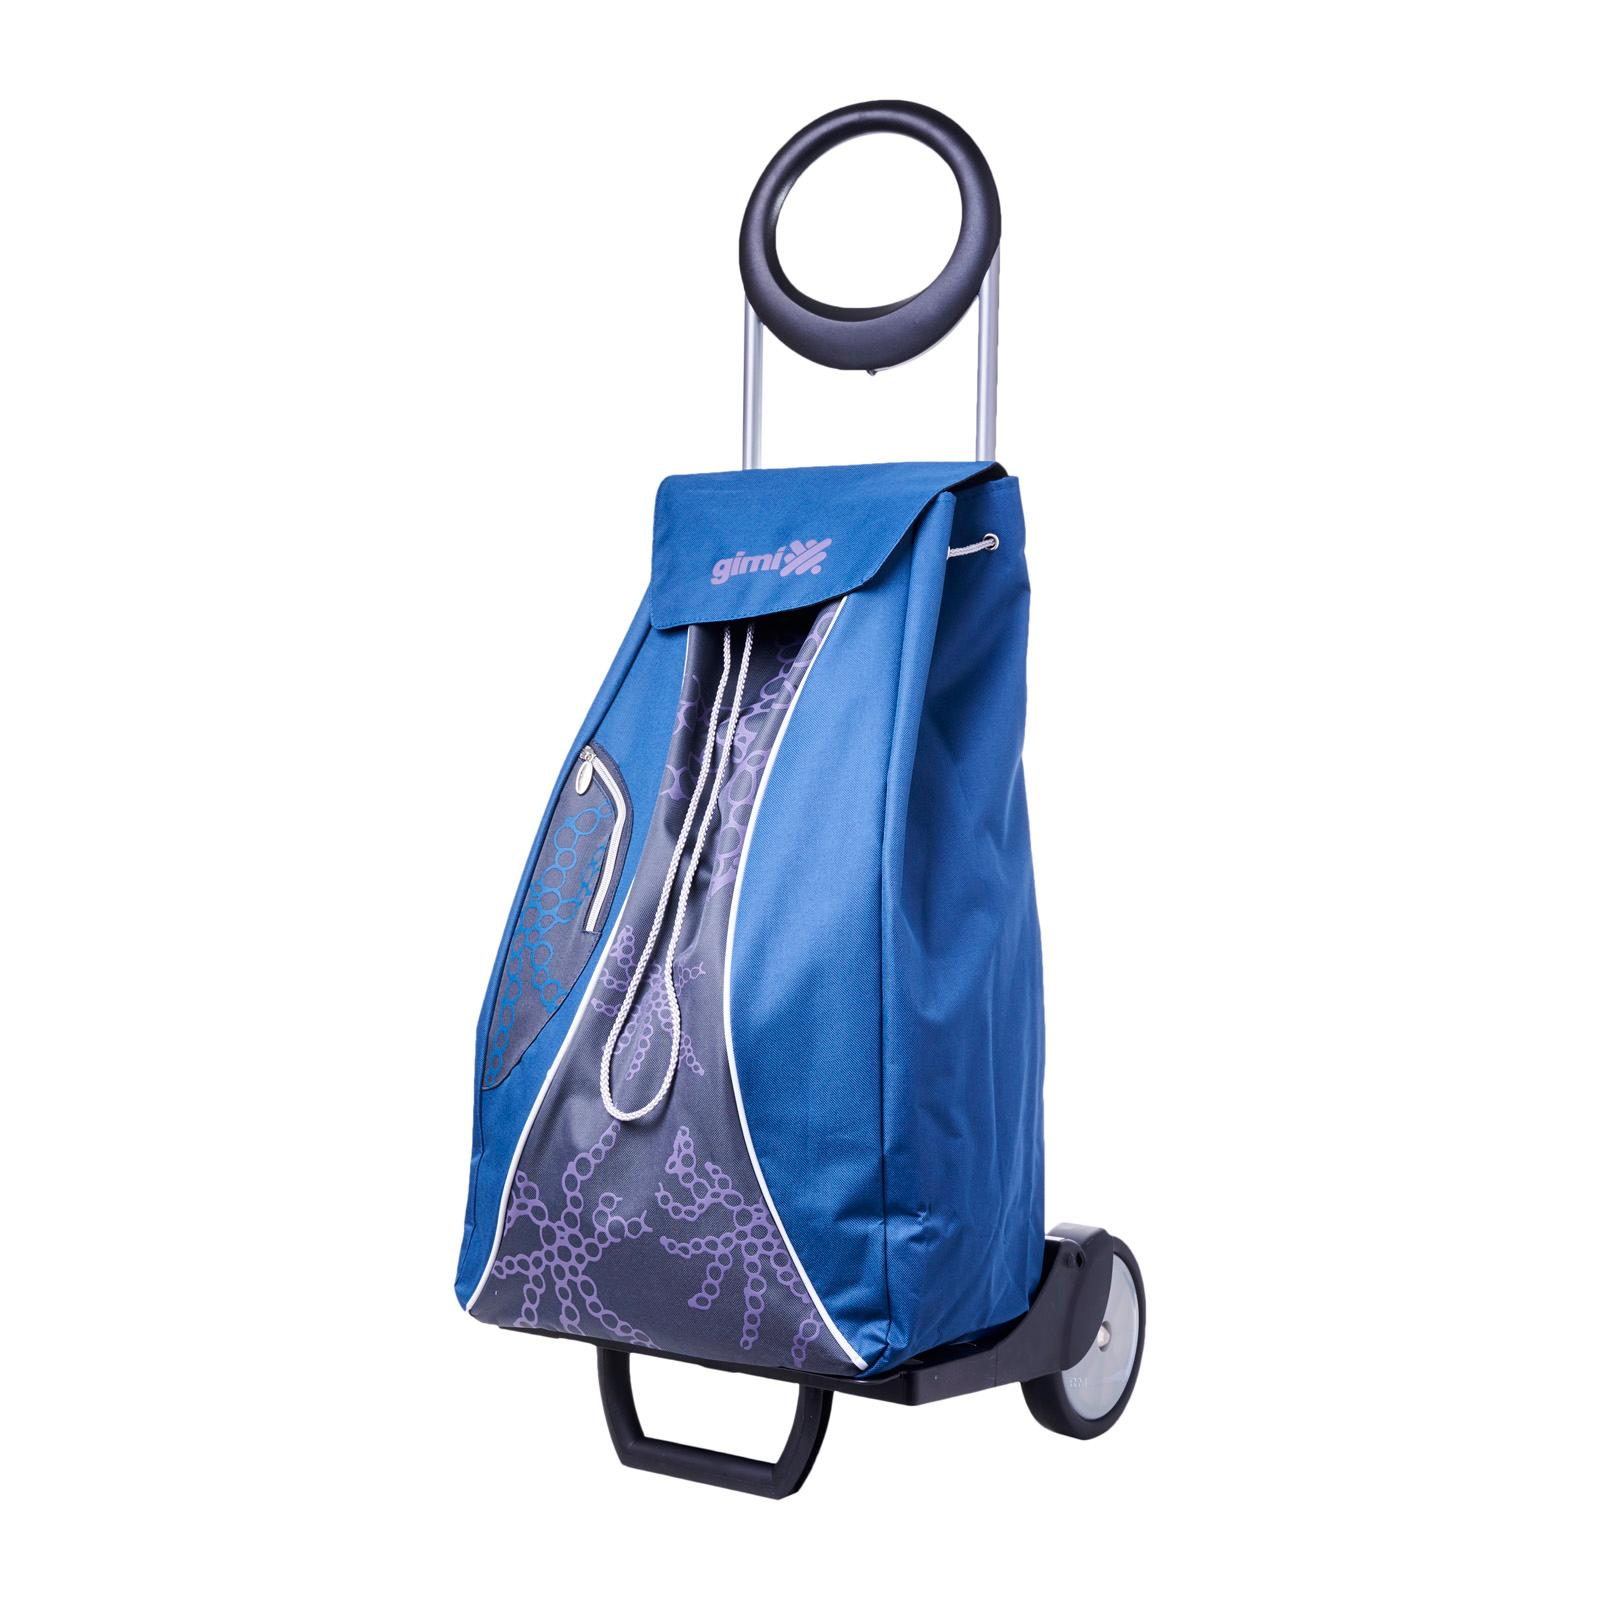 Gimi Shopping Trolley Market Blue Poolee